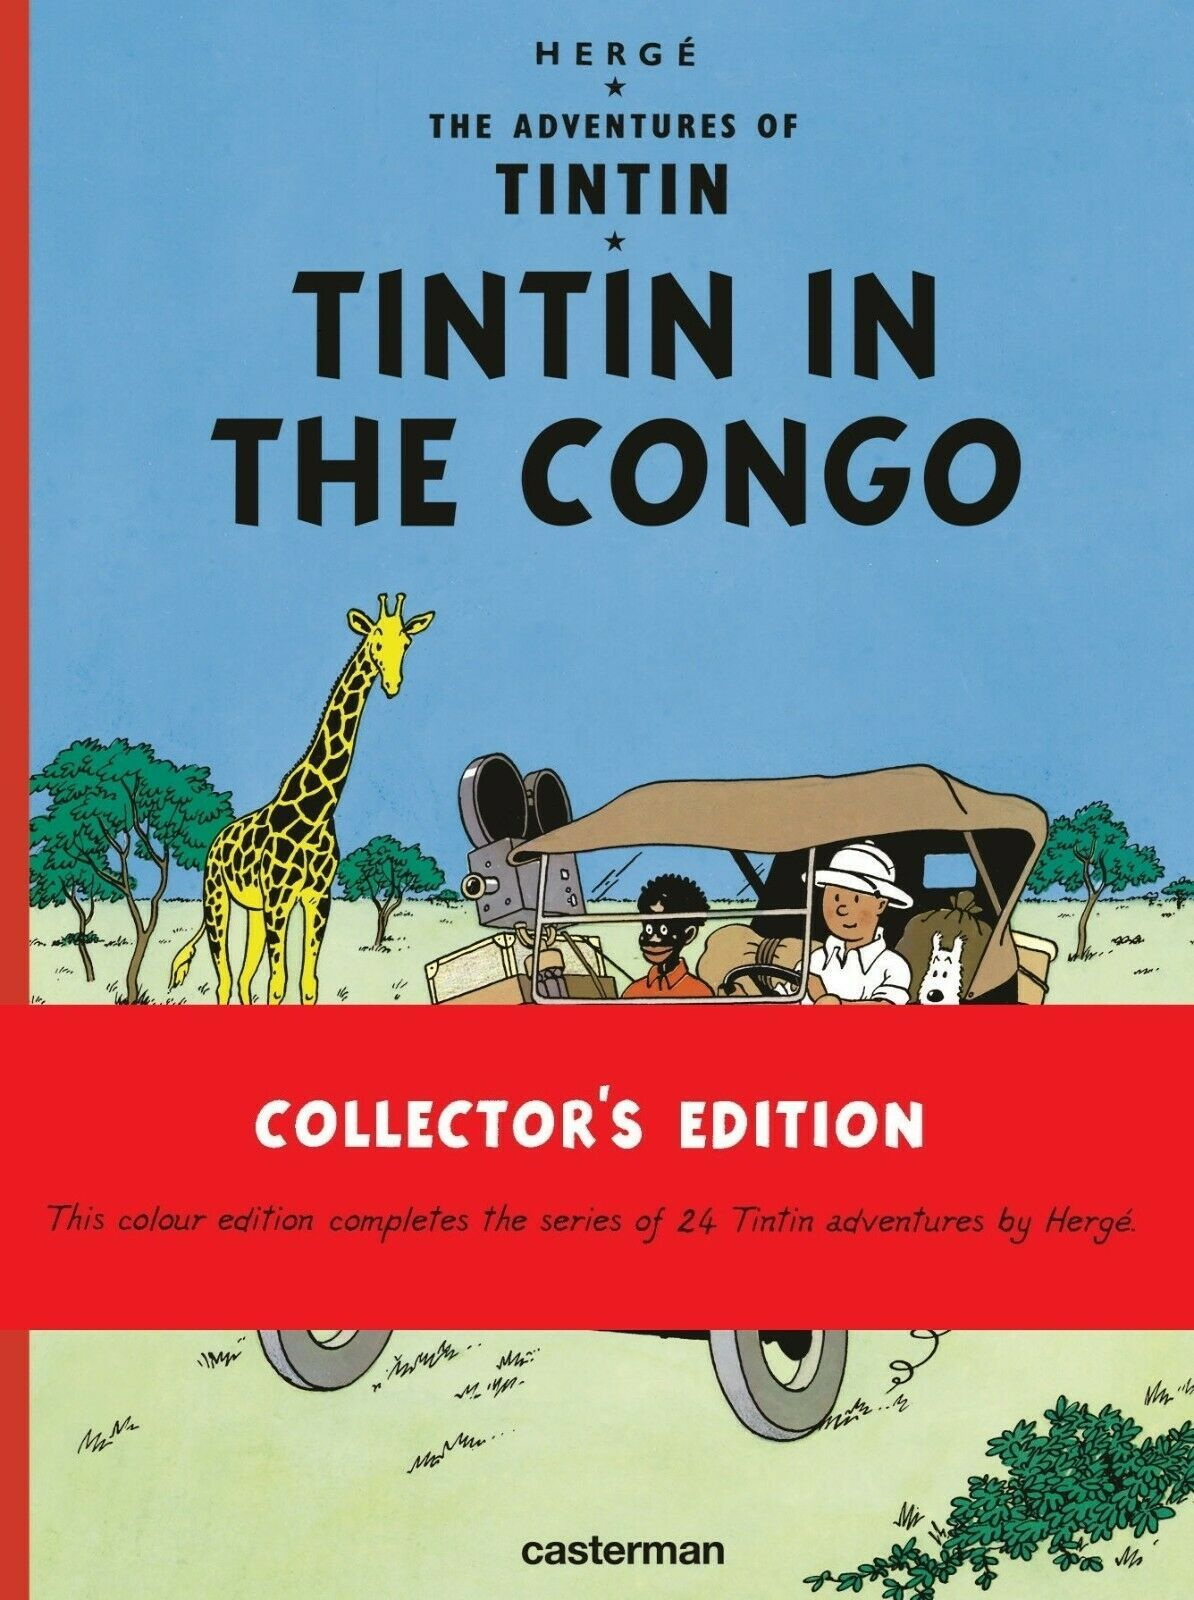 Tintin in the congo hardcover book Casterman sealed Collector's edition